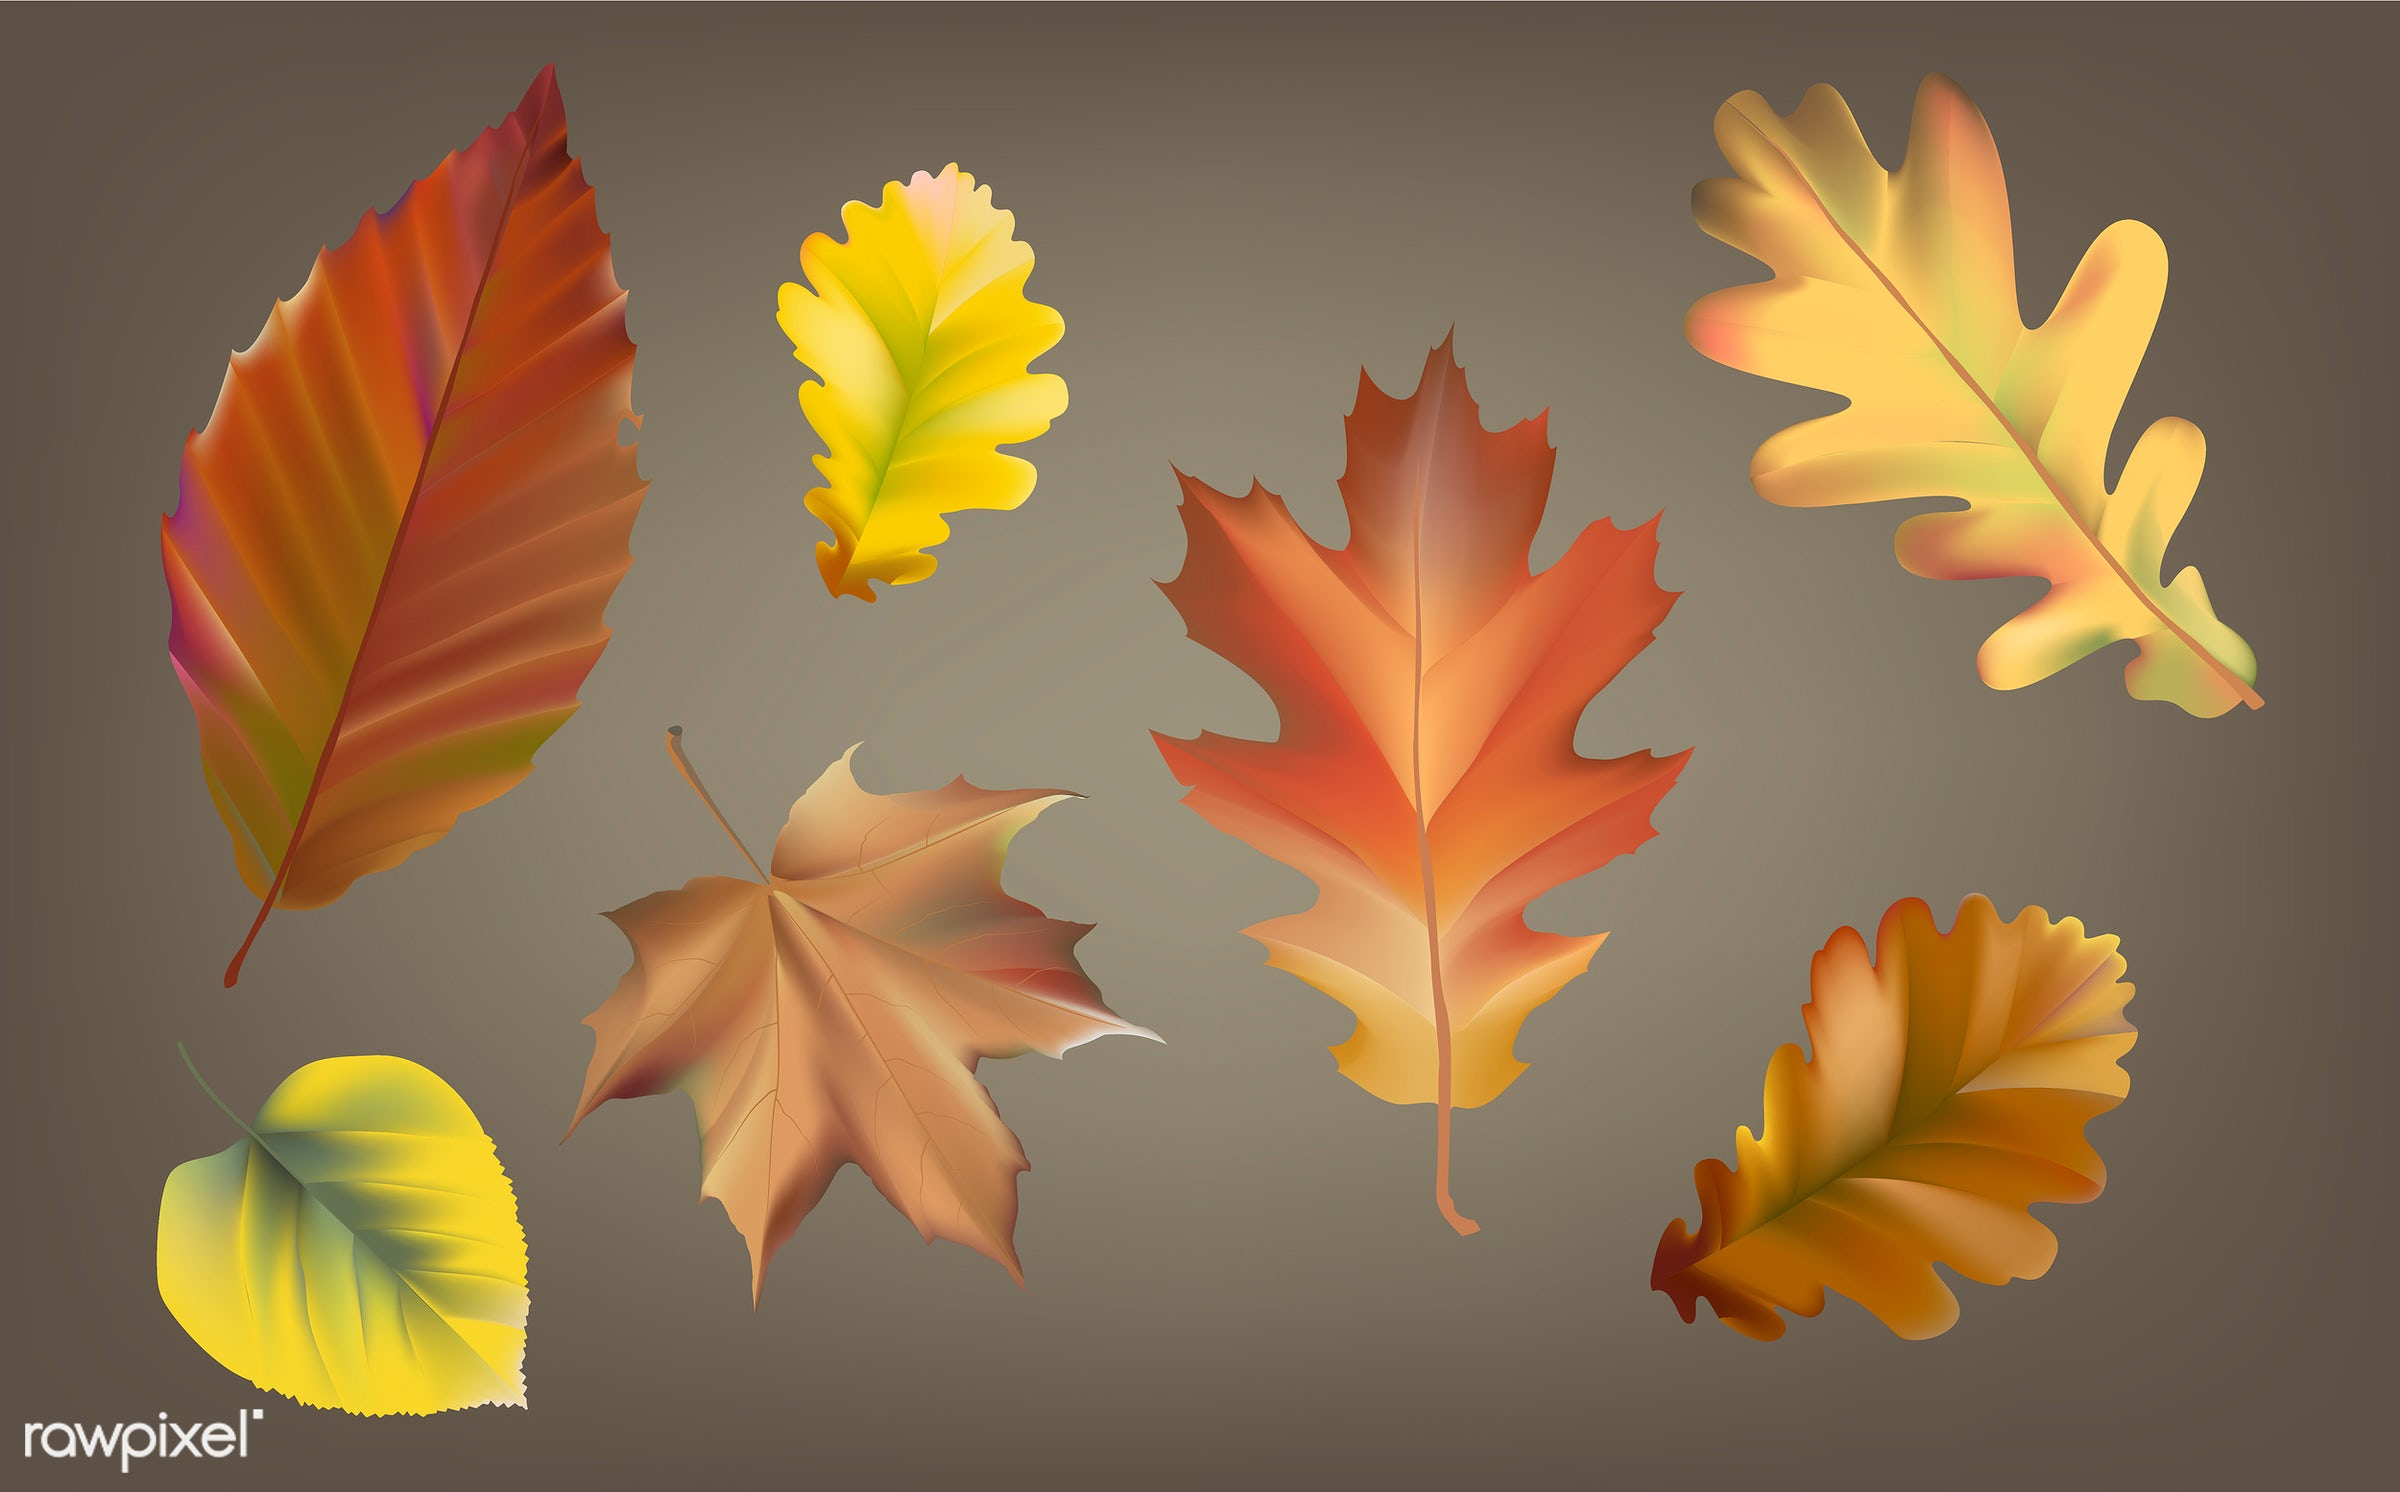 Collection of autumn leaves vector - autumn, fall, leaves, leaf, vector, illustration, graphic, collection, set, orange,...